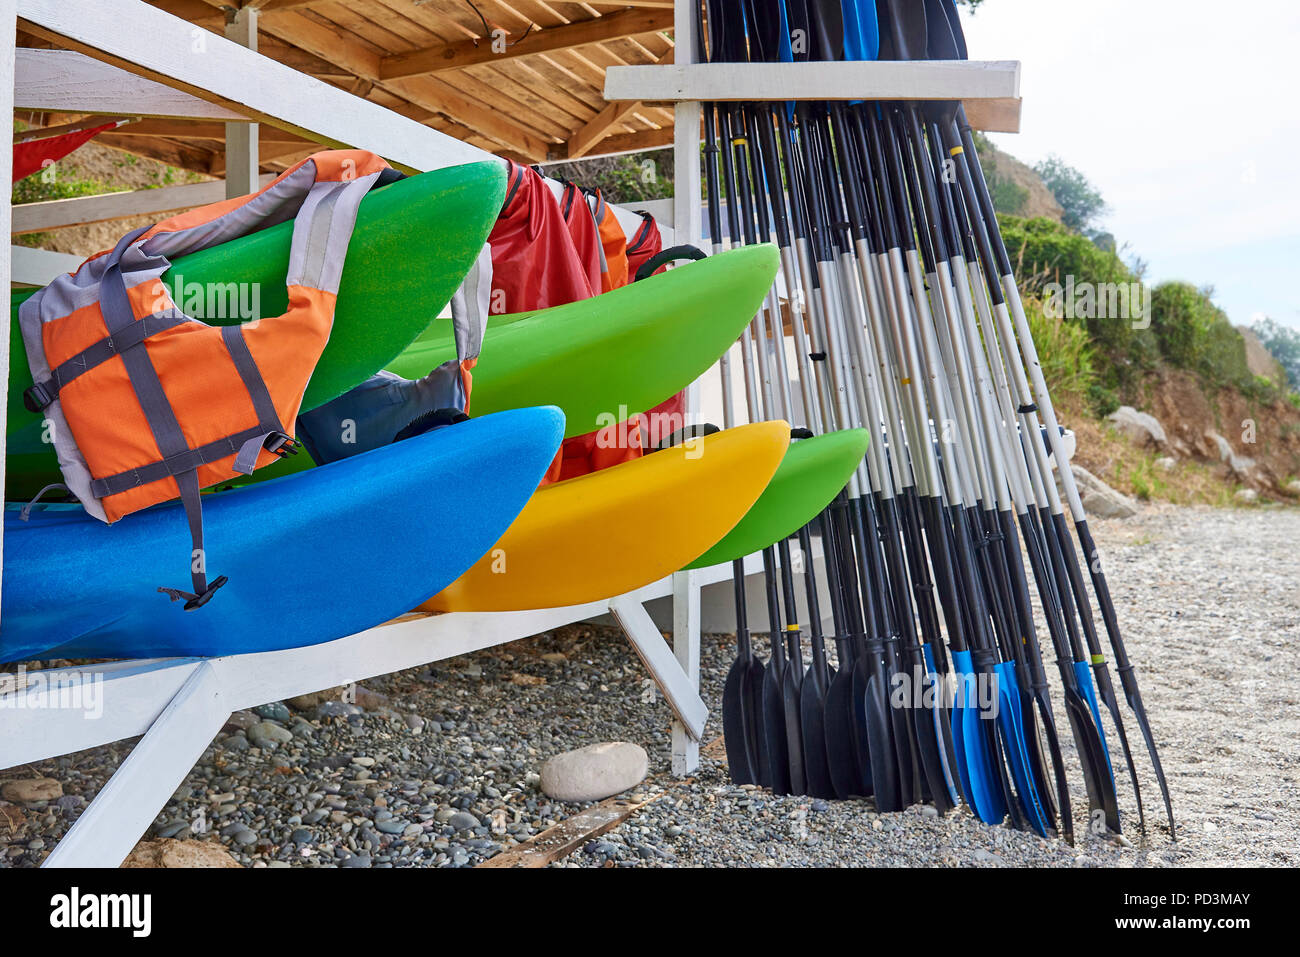 Kayaks, life jackets, oars under a wooden roof on the beach. Stock Photo